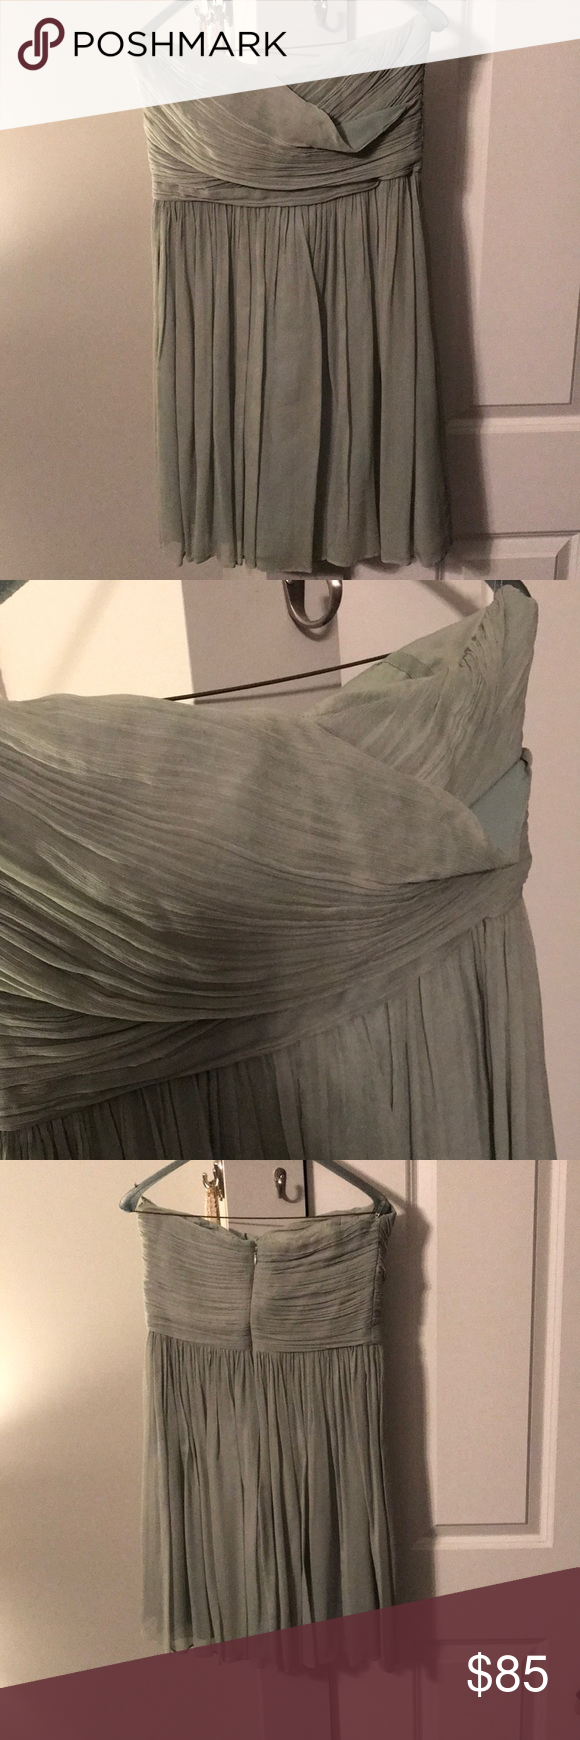 J. Crew bridesmaid dress Sage green. No alterations. Worn once; dry cleaned! J. Crew Dresses Strapless #sagegreendress J. Crew bridesmaid dress Sage green. No alterations. Worn once; dry cleaned! J. Crew Dresses Strapless #sagegreenbridesmaiddresses